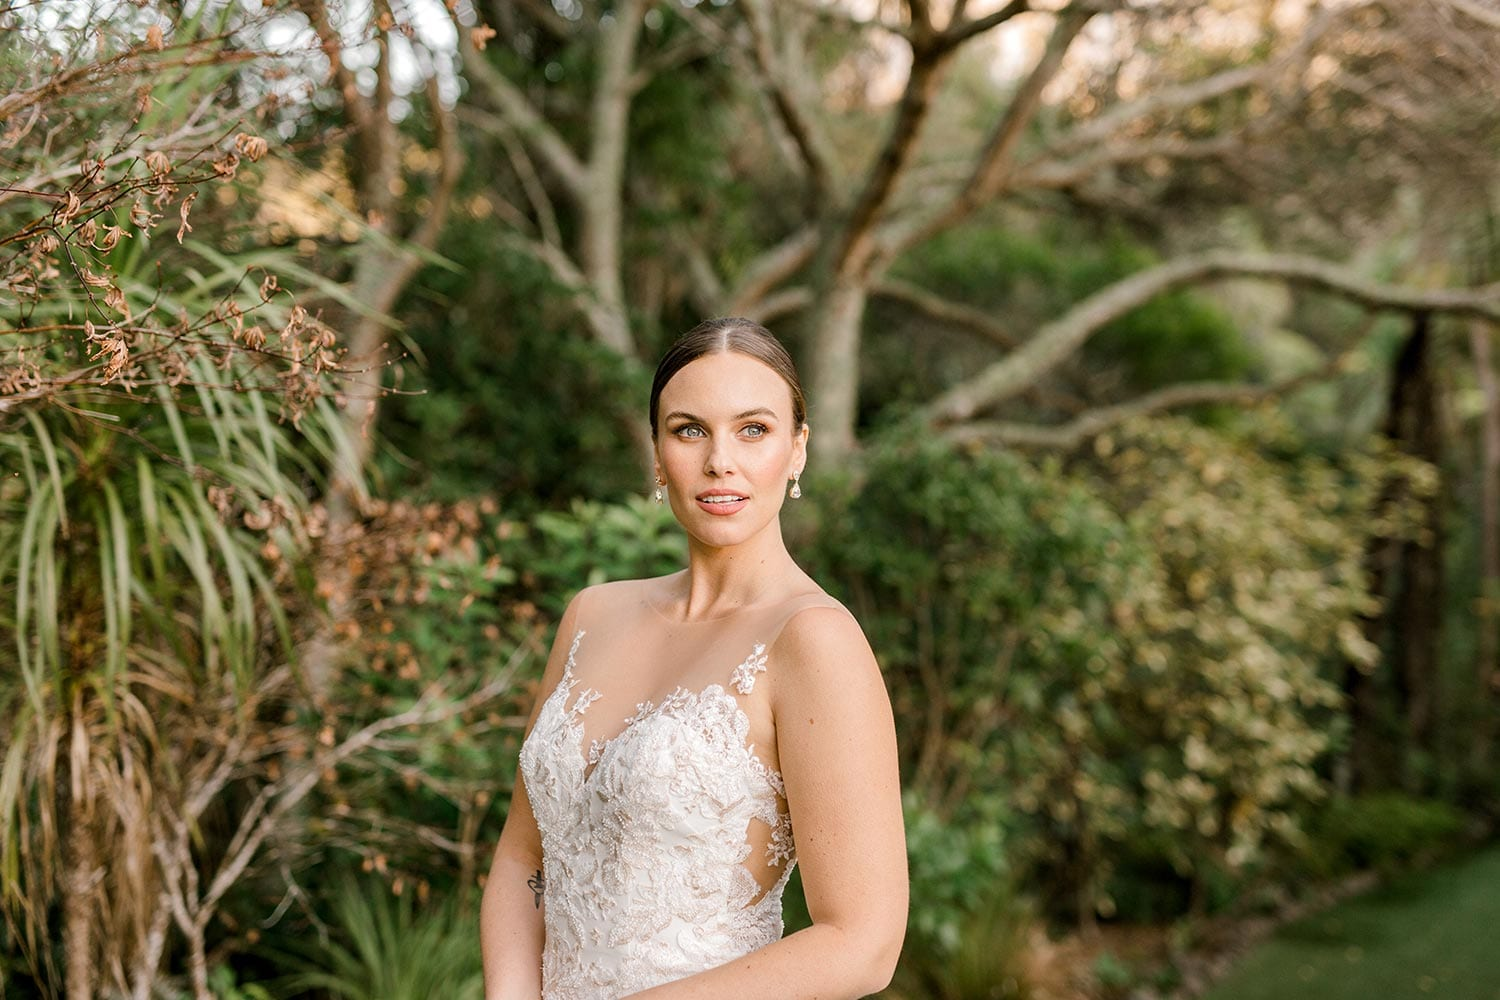 Samantha Wedding Dress from Vinka Design. This beautiful wedding dress has a nude sheer illusion strapless neckline made from fine Italian tulle. Low sheer back & structured bodice, & soft crepe train. Detail of bodice from the front. Photographed in Landscaped garden.